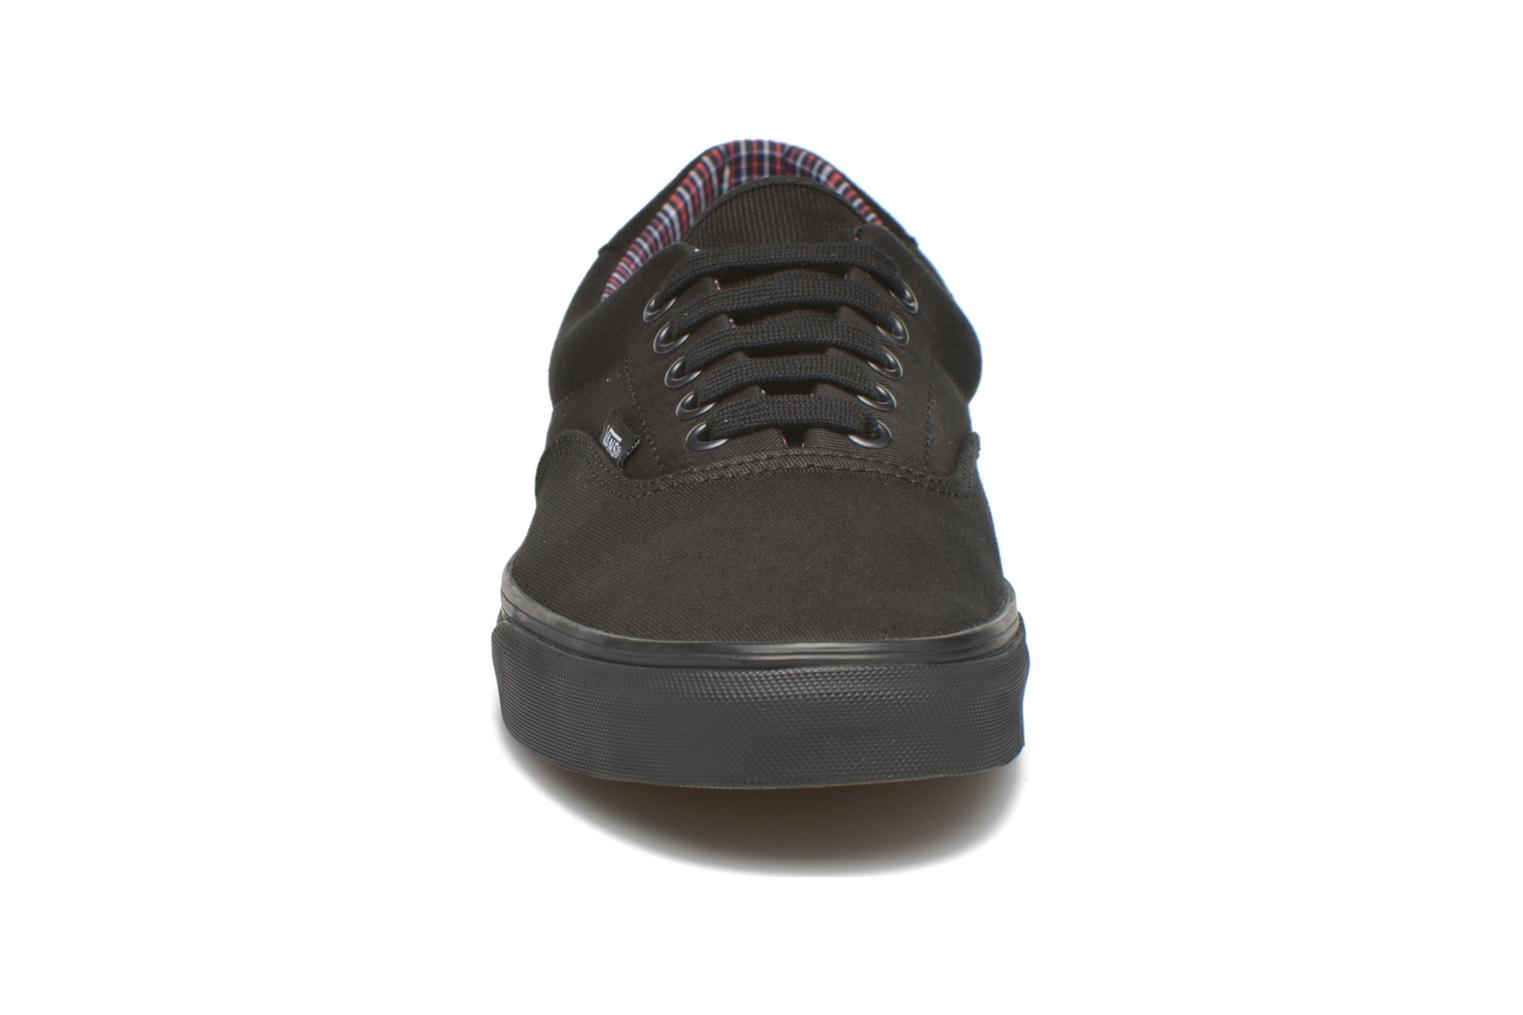 Era 59 (Cord & Plaid) Black/Black